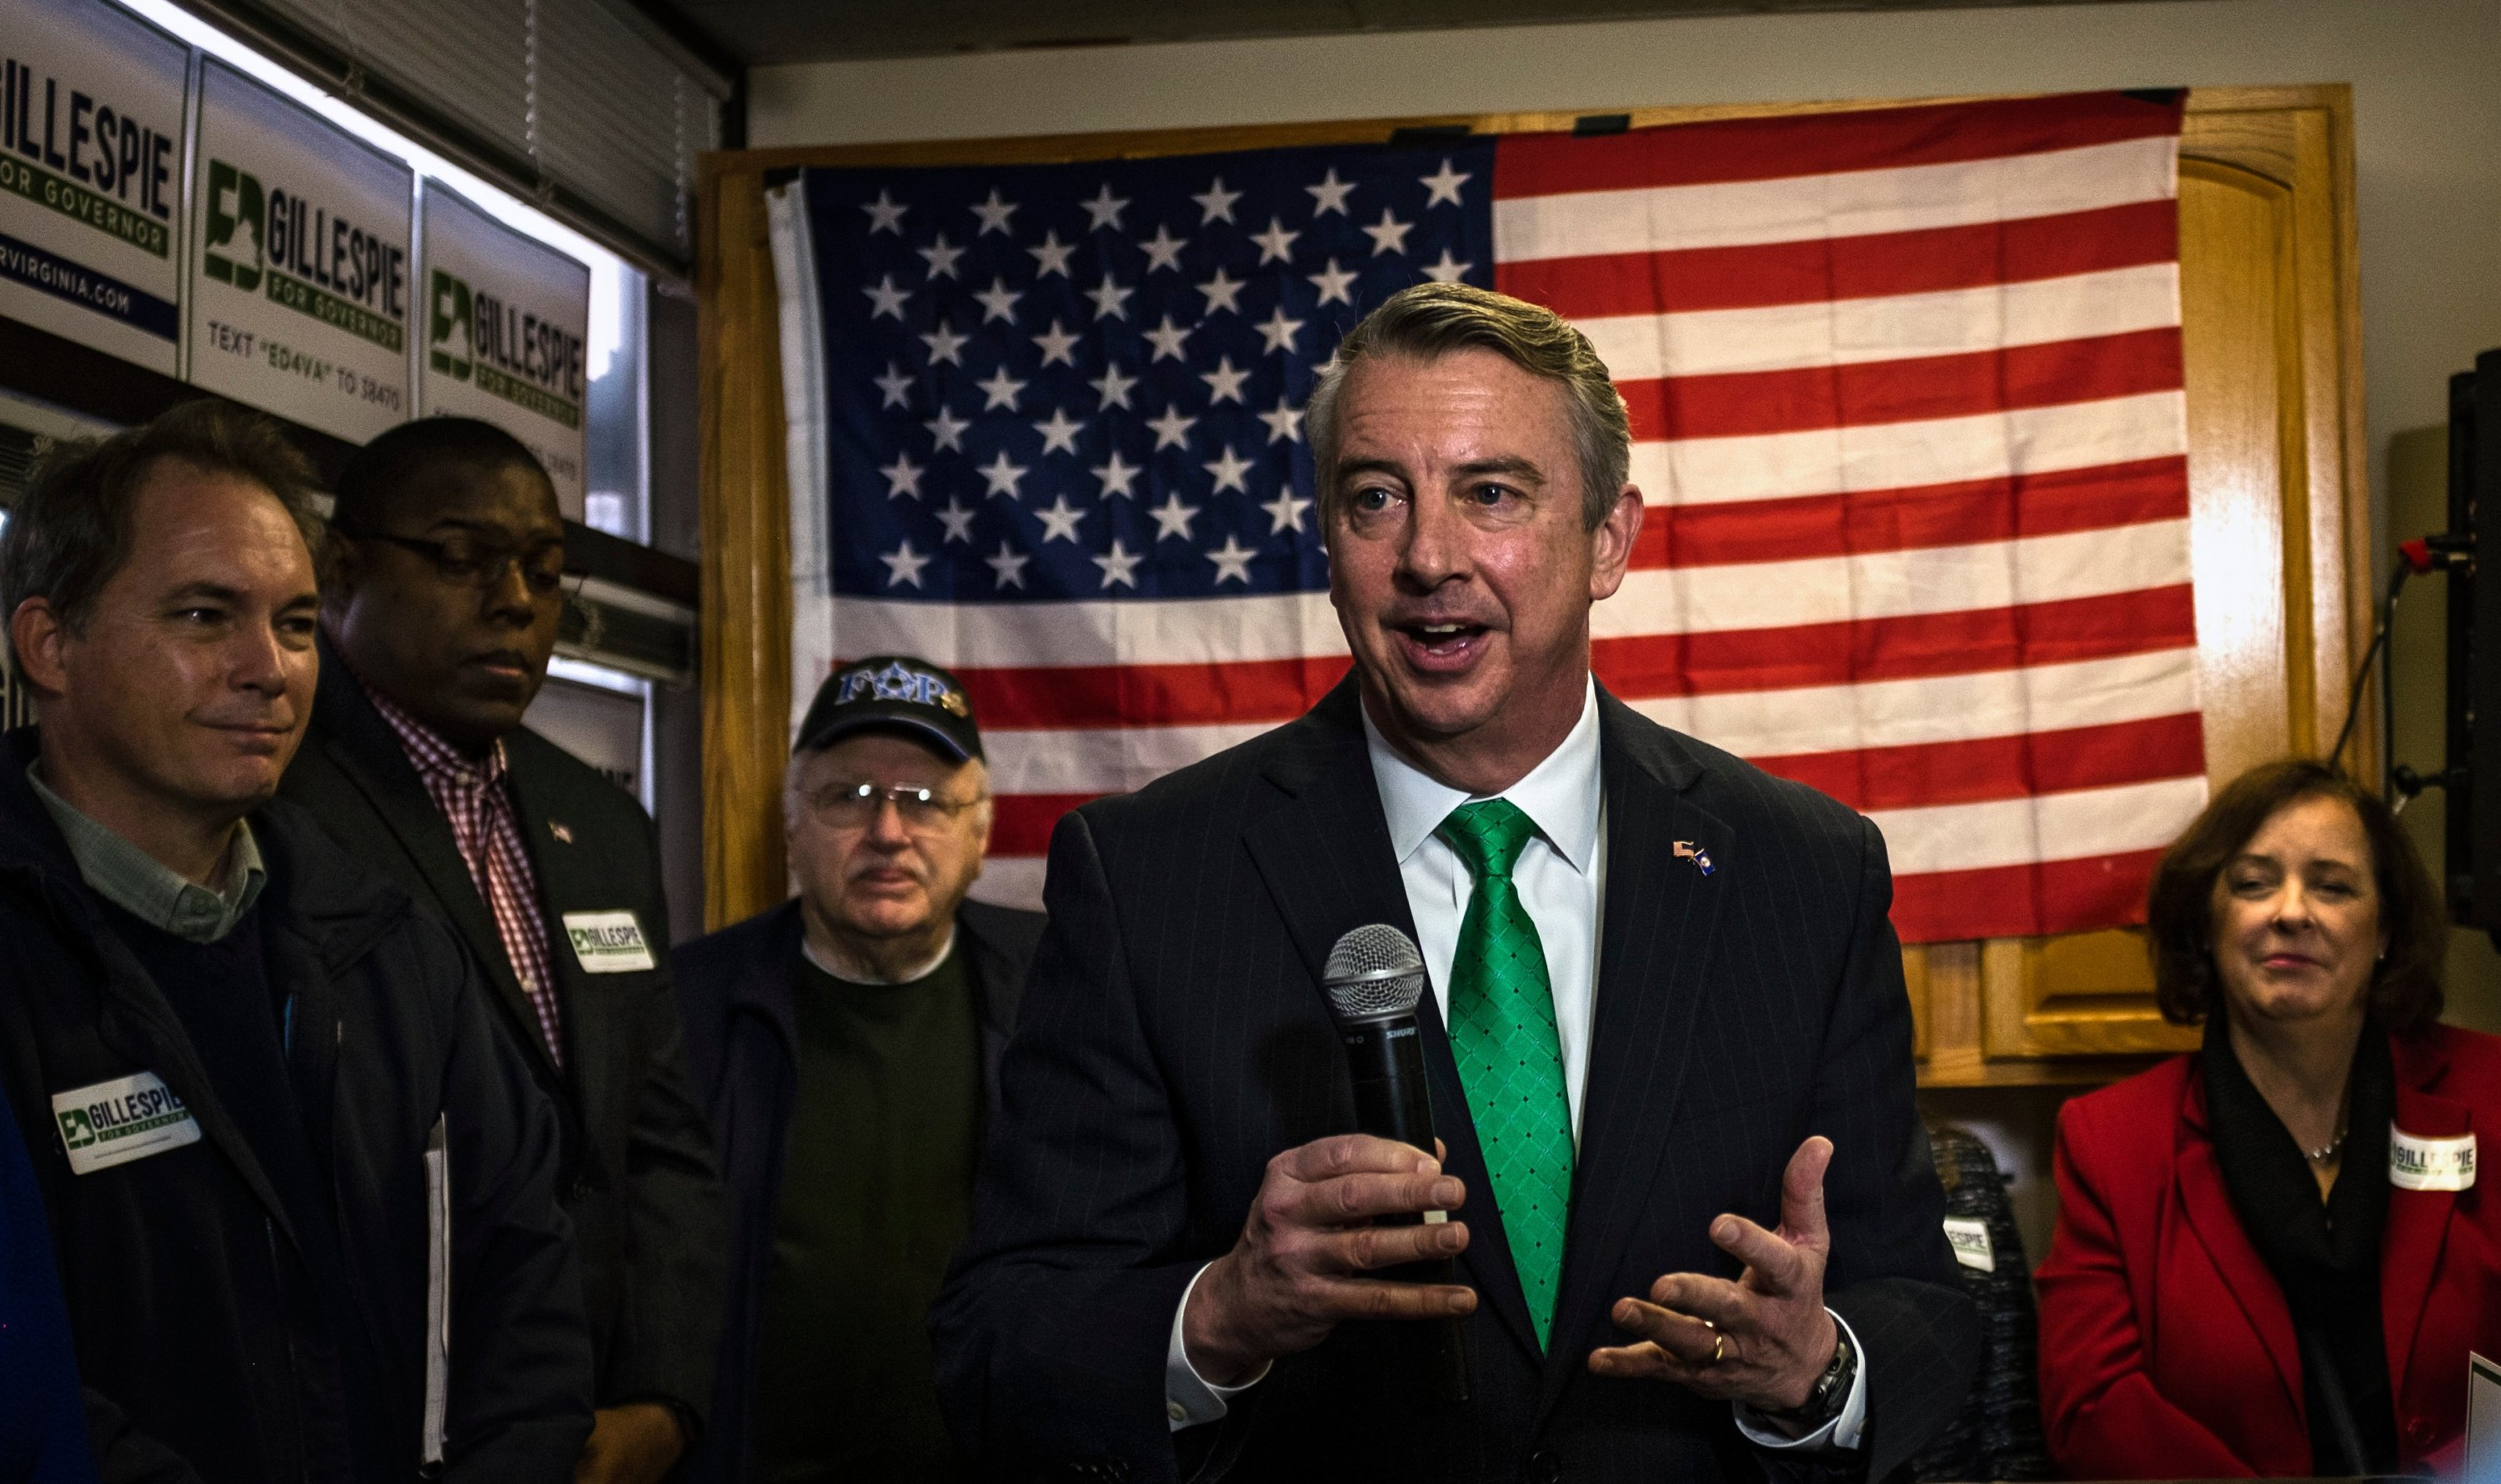 Gillespie campaigning in Chantilly. To win, he'll need to do well in moderate Northern Virginia. Photograph by J. Lawler Duggan/Washington Post via Getty Images.